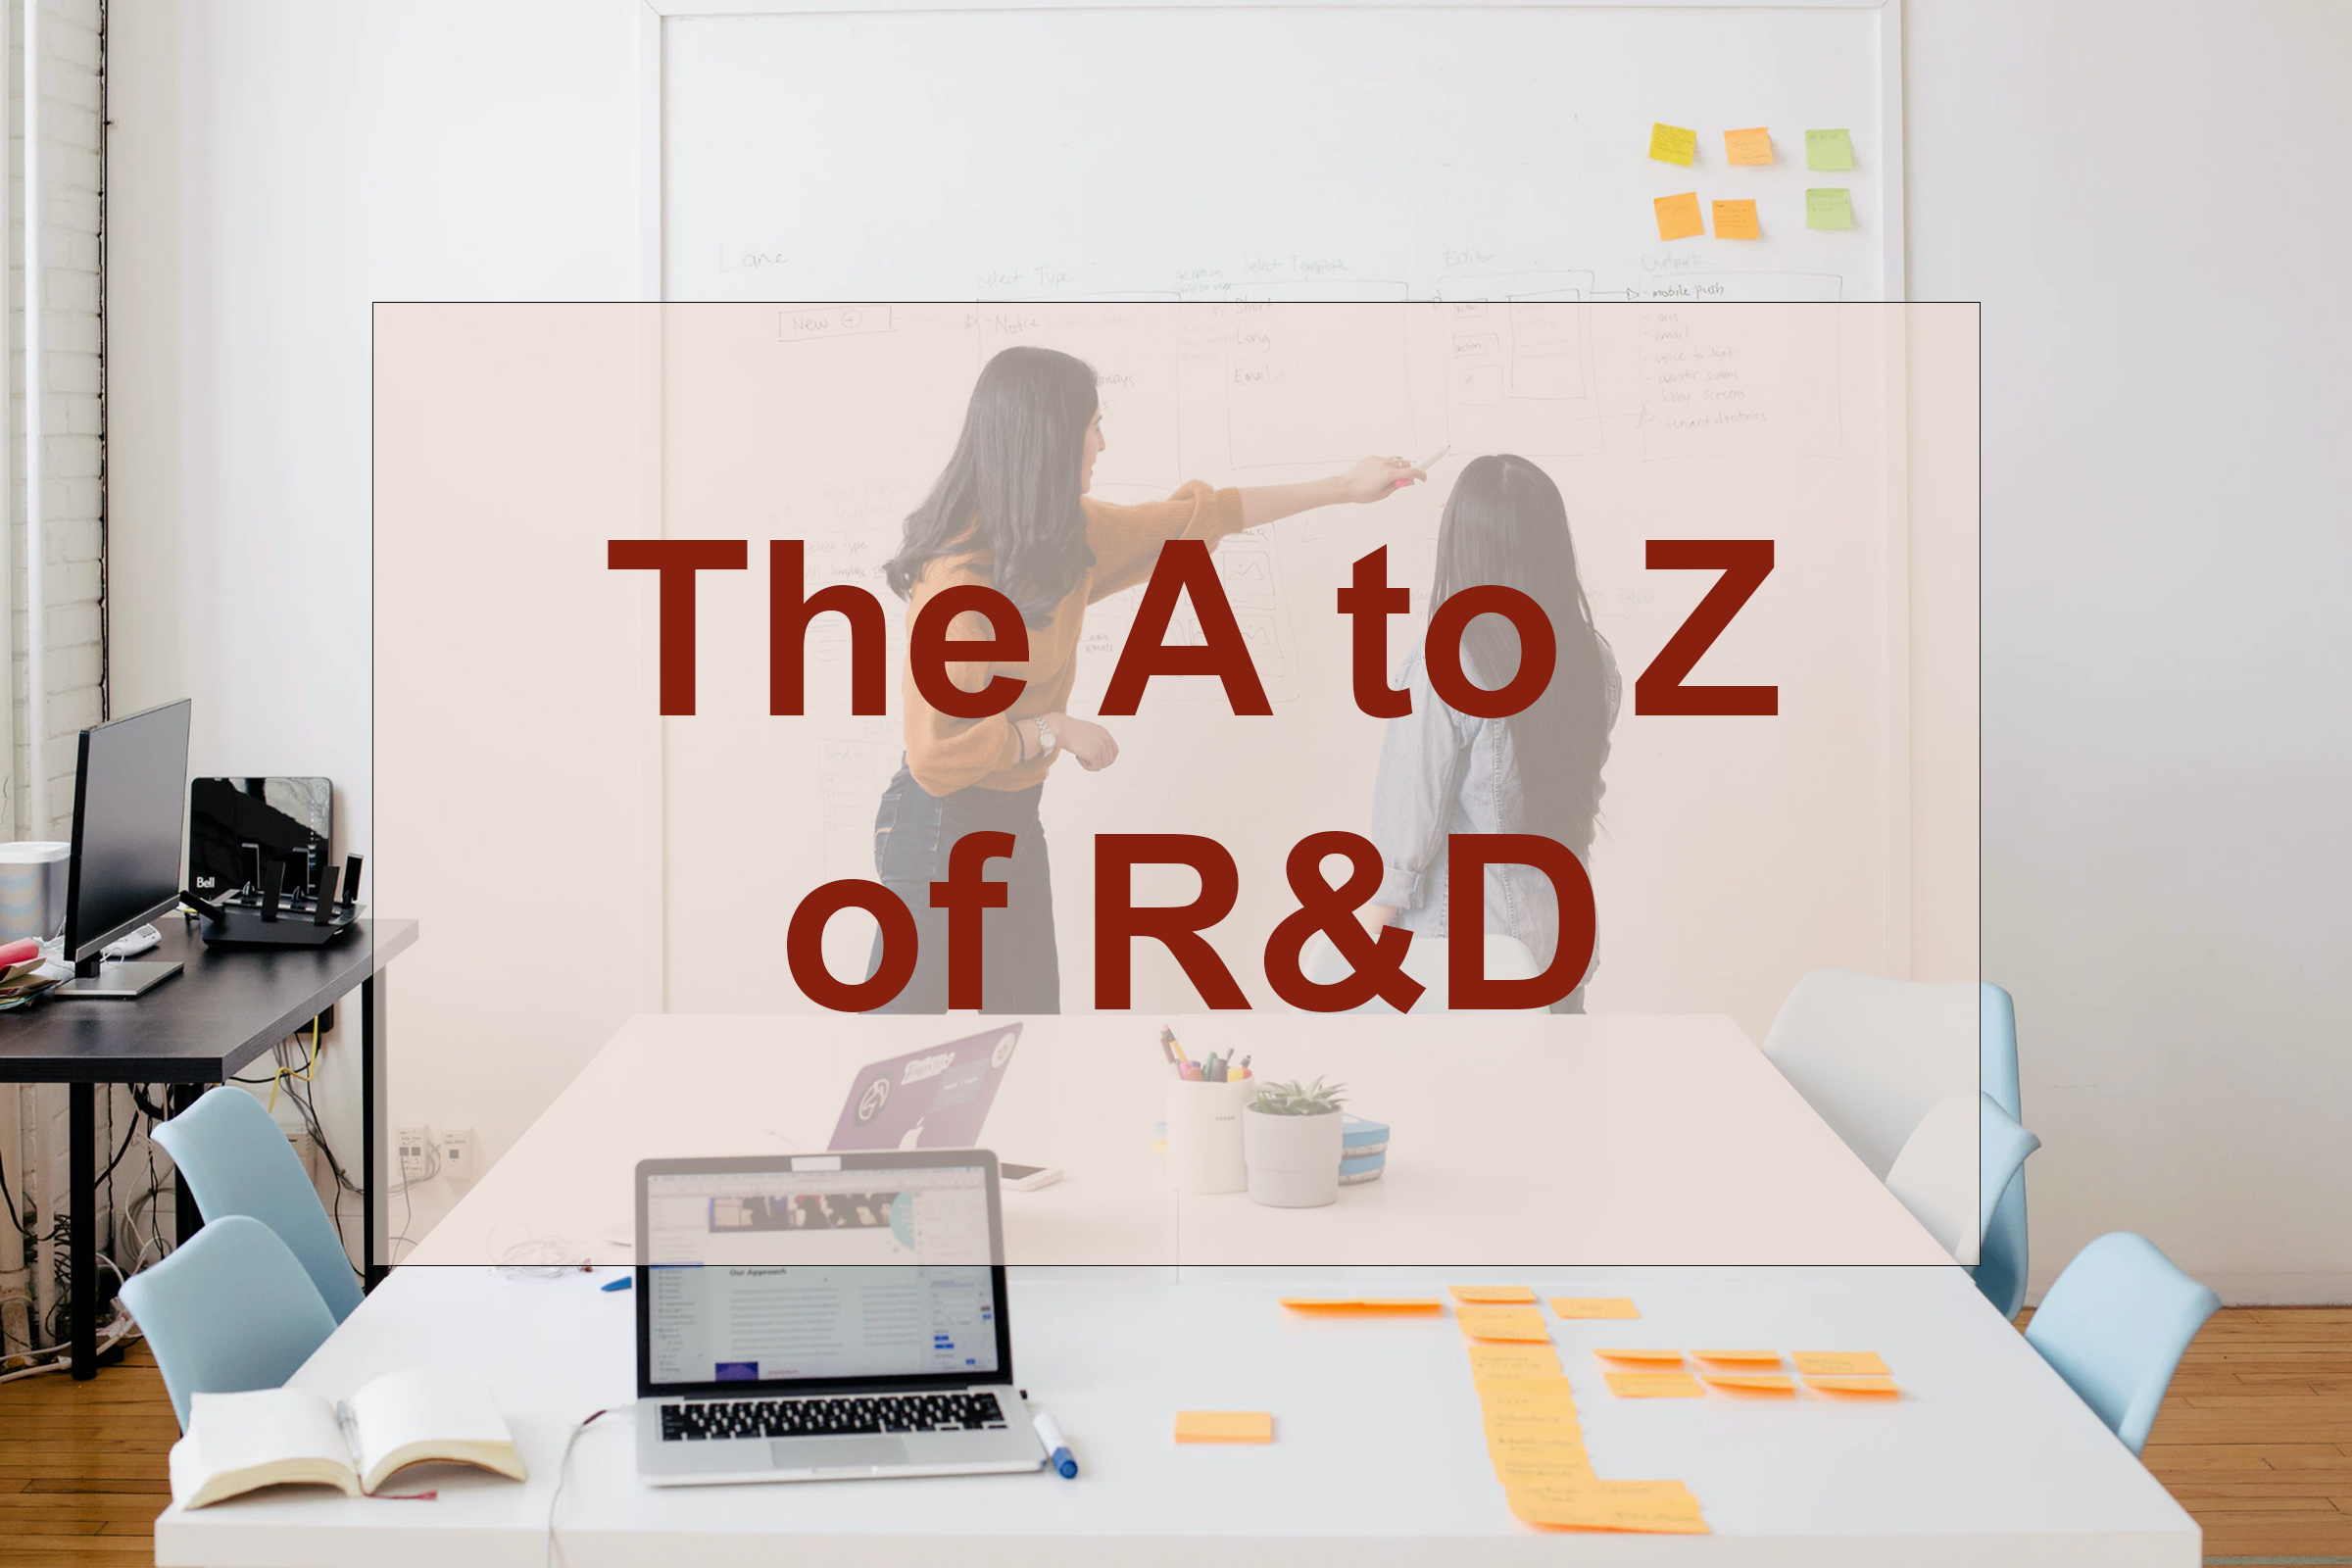 The A to Z of R&D